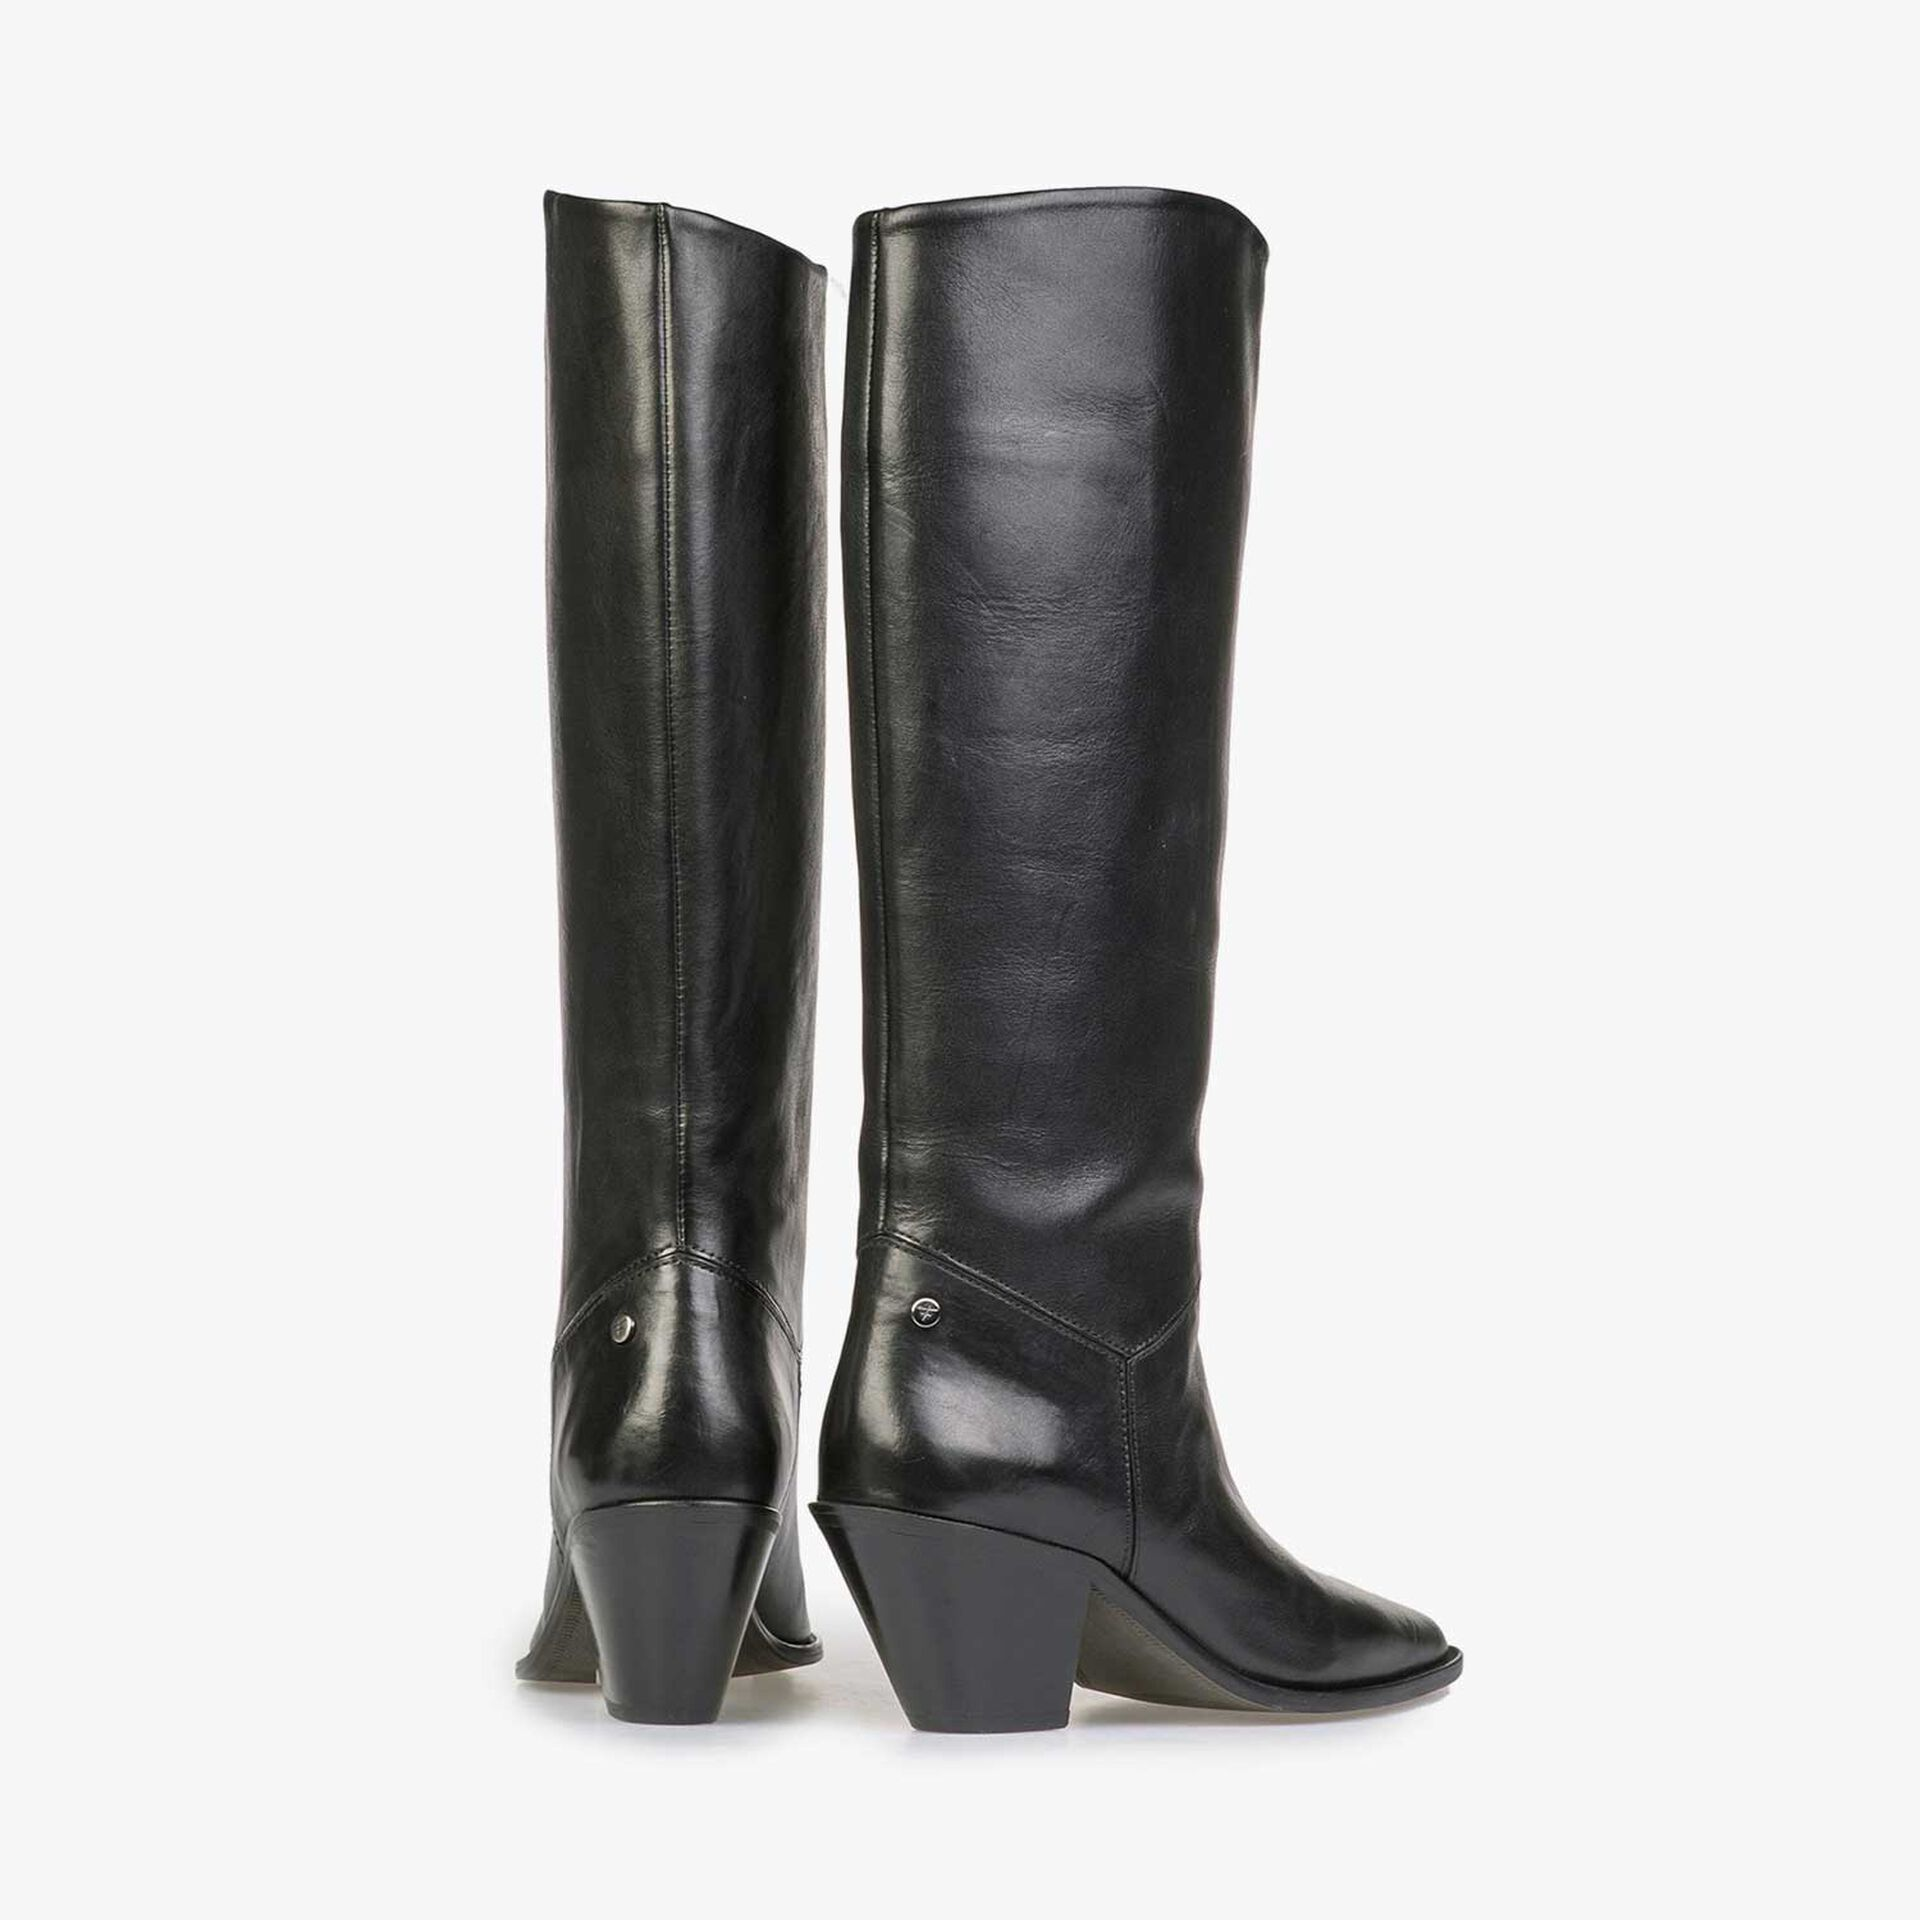 High black calf leather western boot